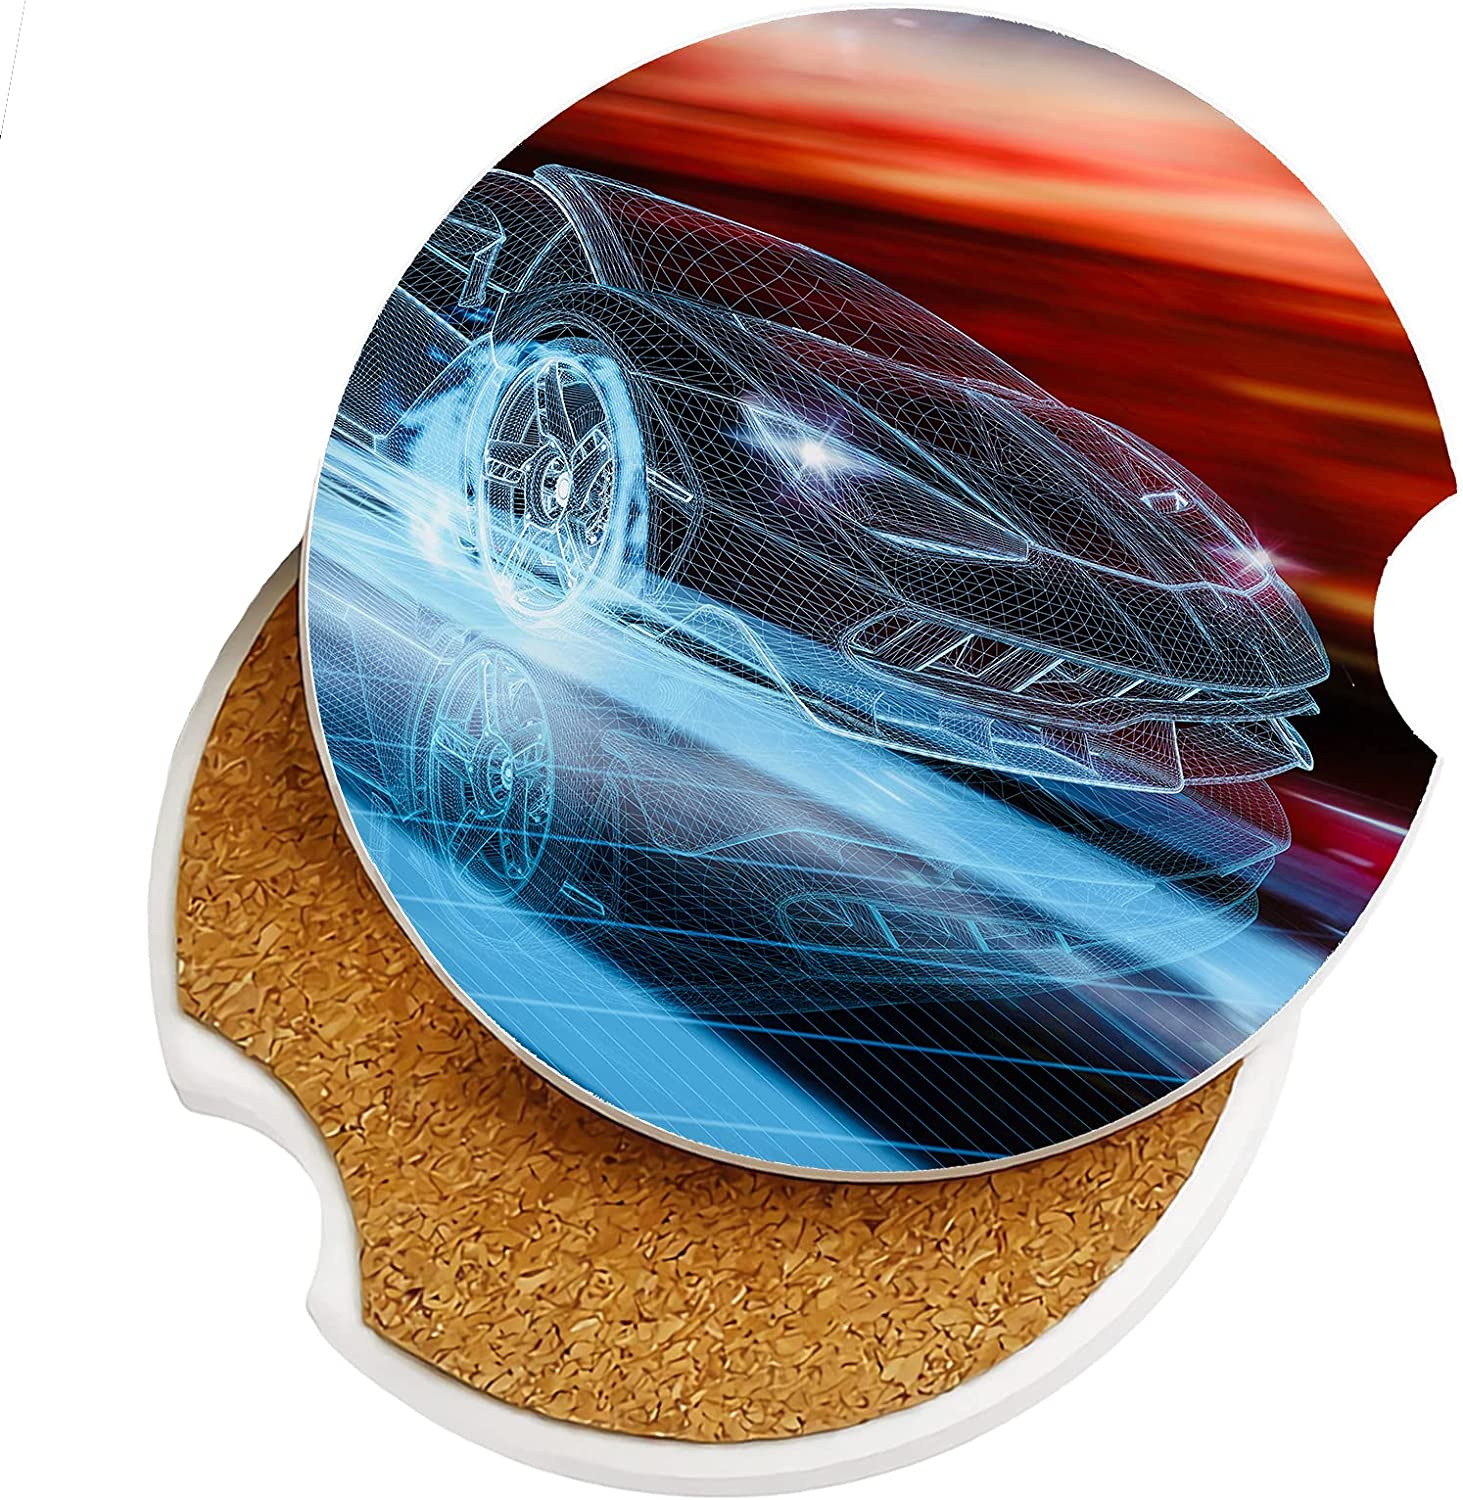 Absorbent Spring new work Car Coasters Luxury 2 Pack for Cup Holders Sto 2.56